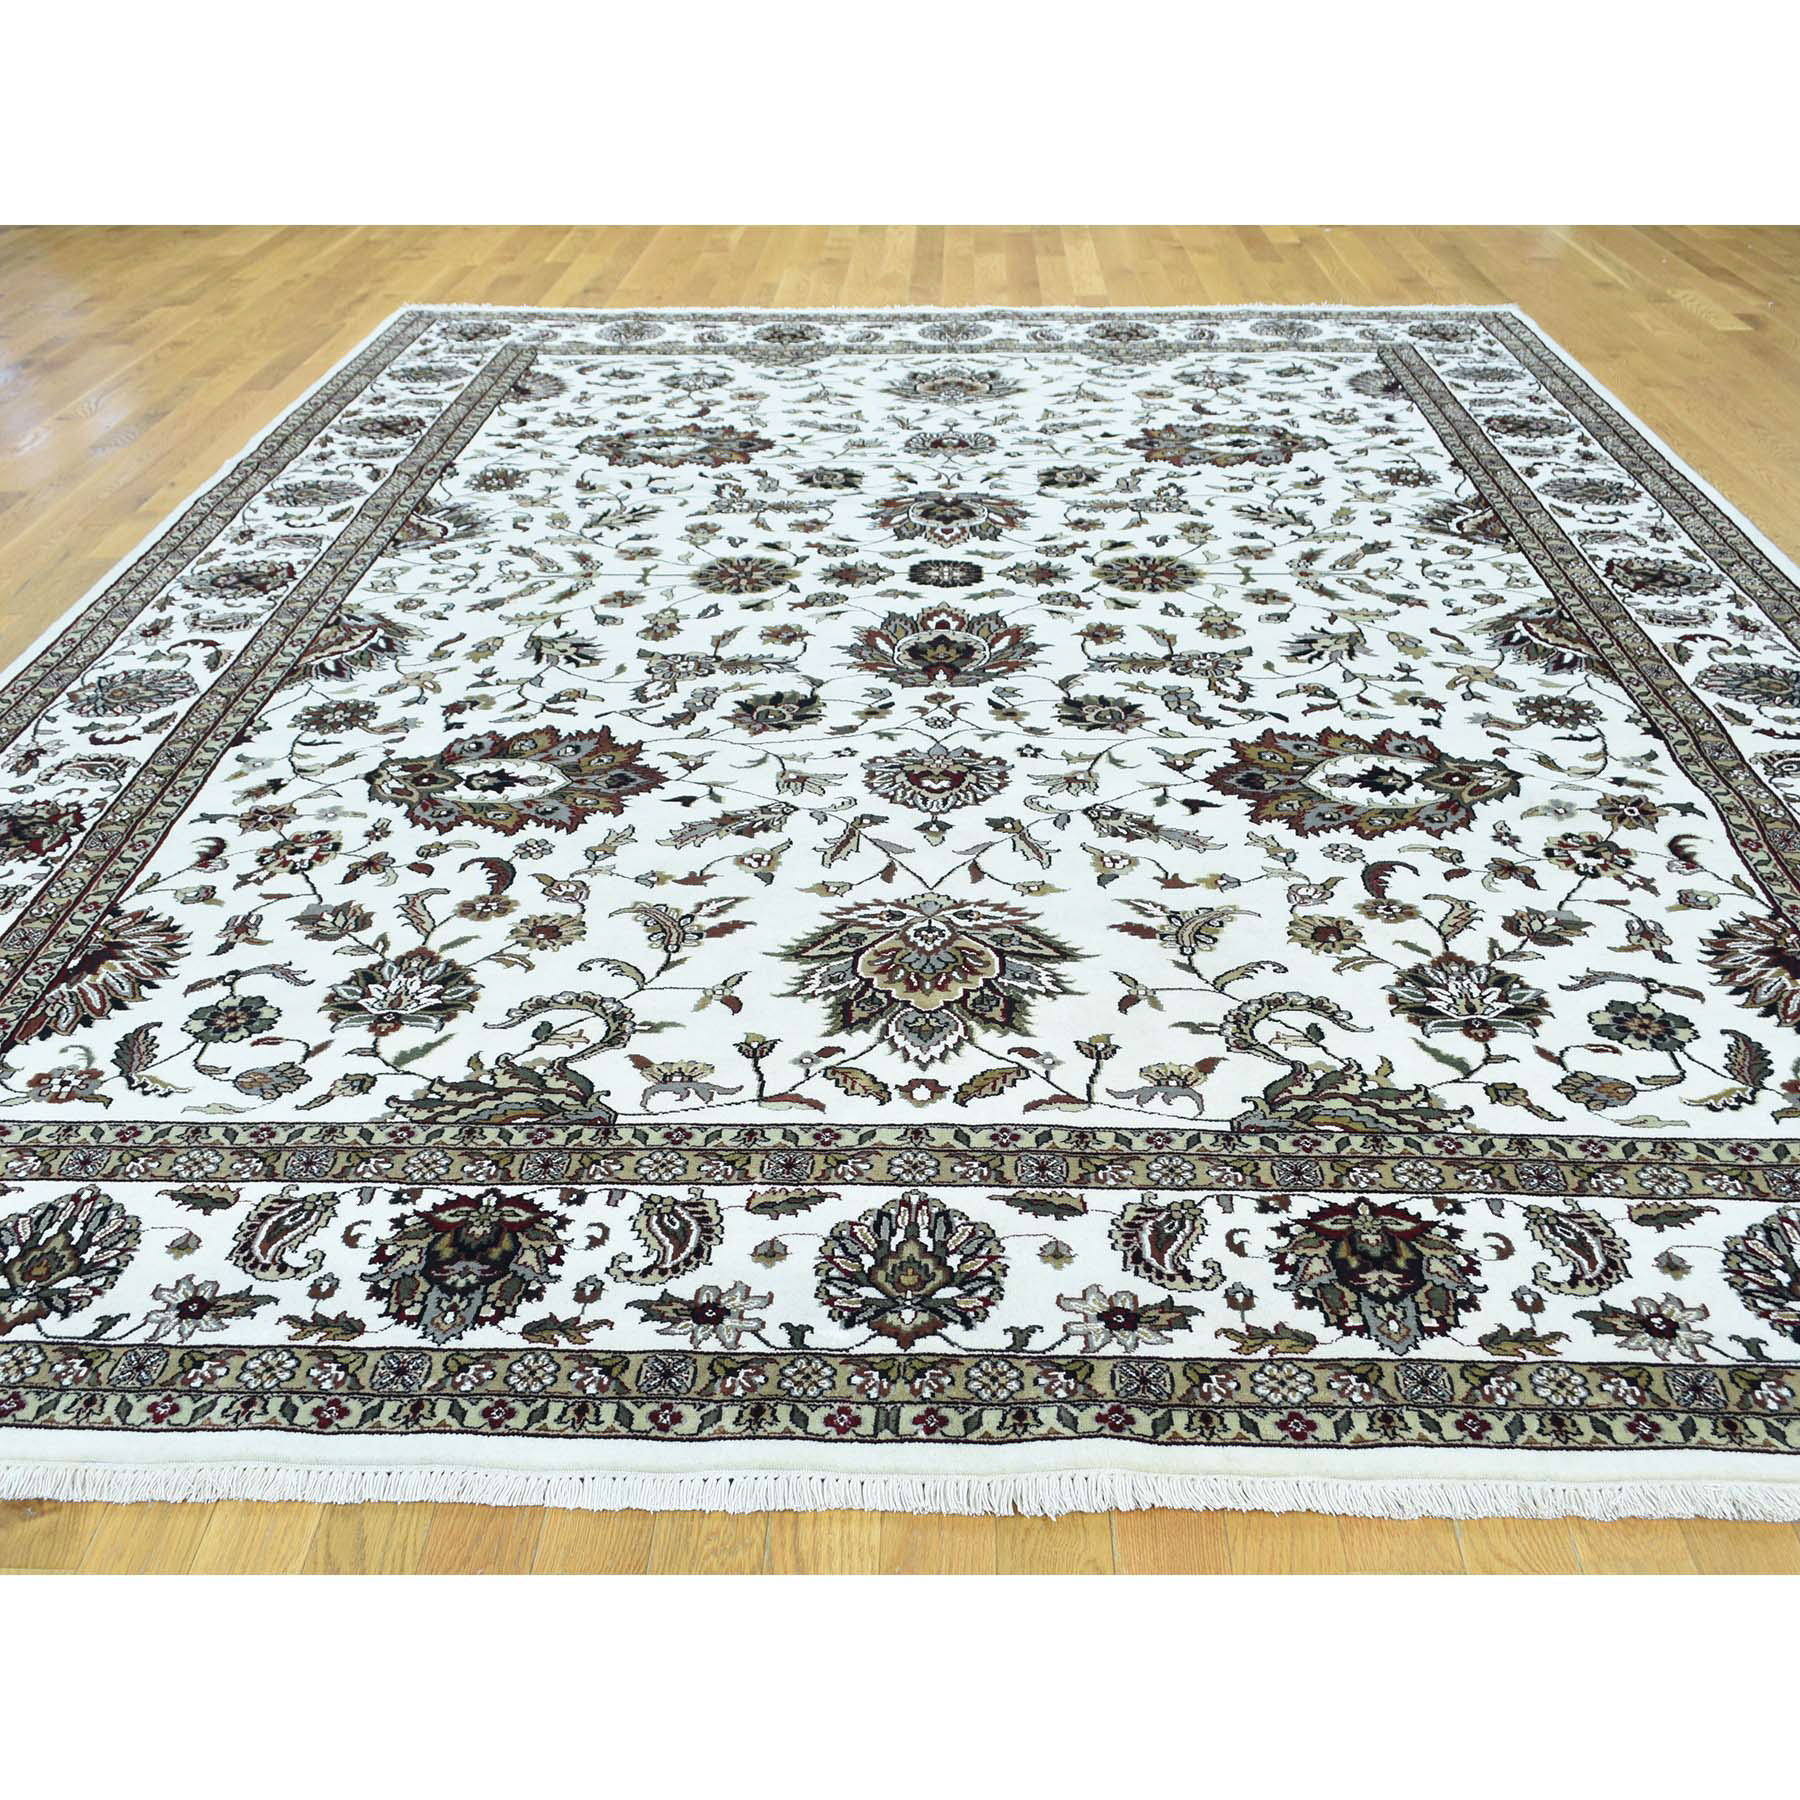 9-x11-10  Wool and Silk Hand-Knotted 250 KPSI Indo Persian  Kashan Oriental Rug